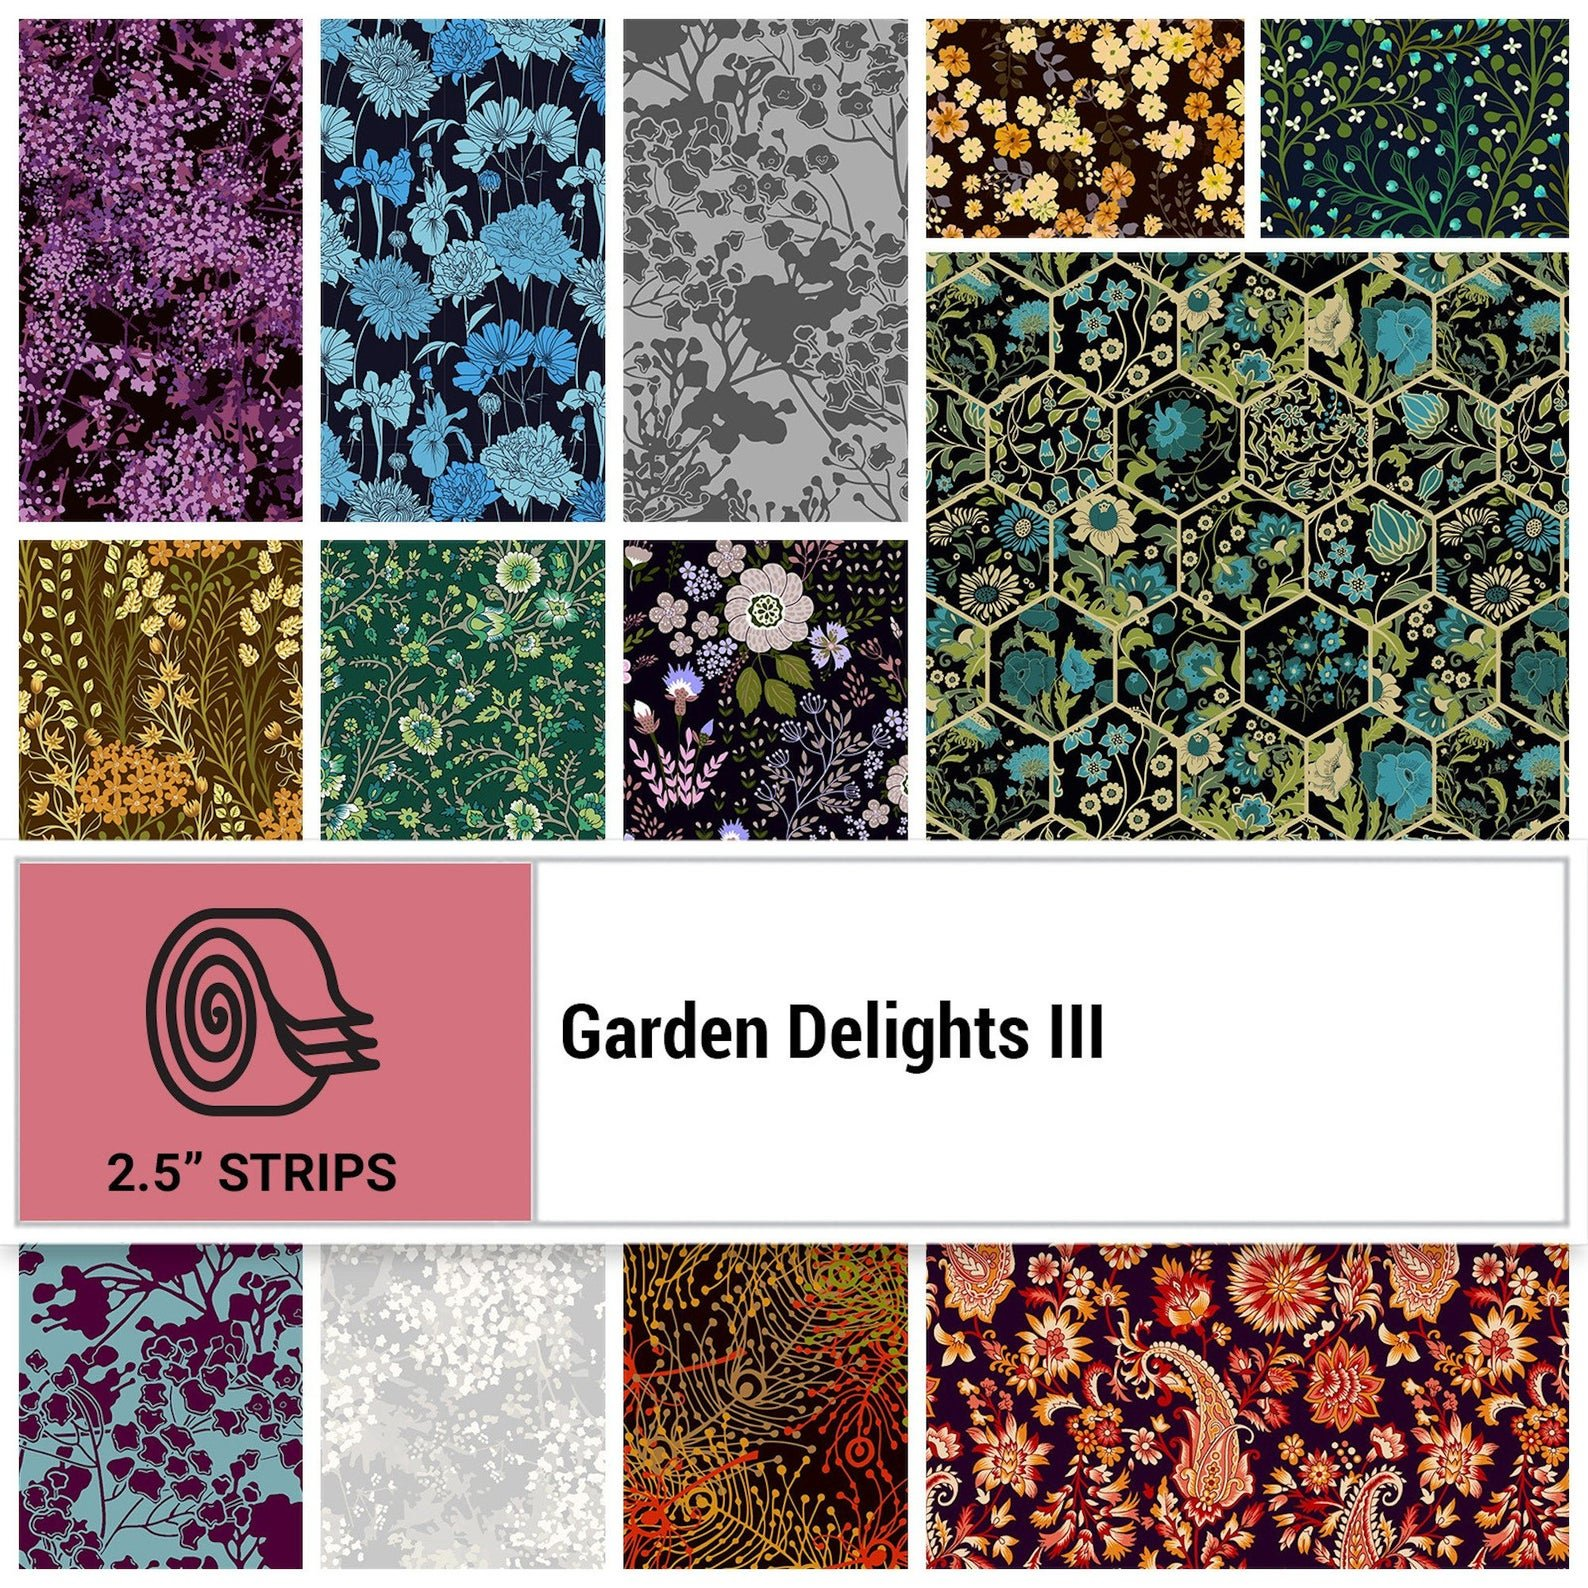 Garden Delights III Jelly Roll